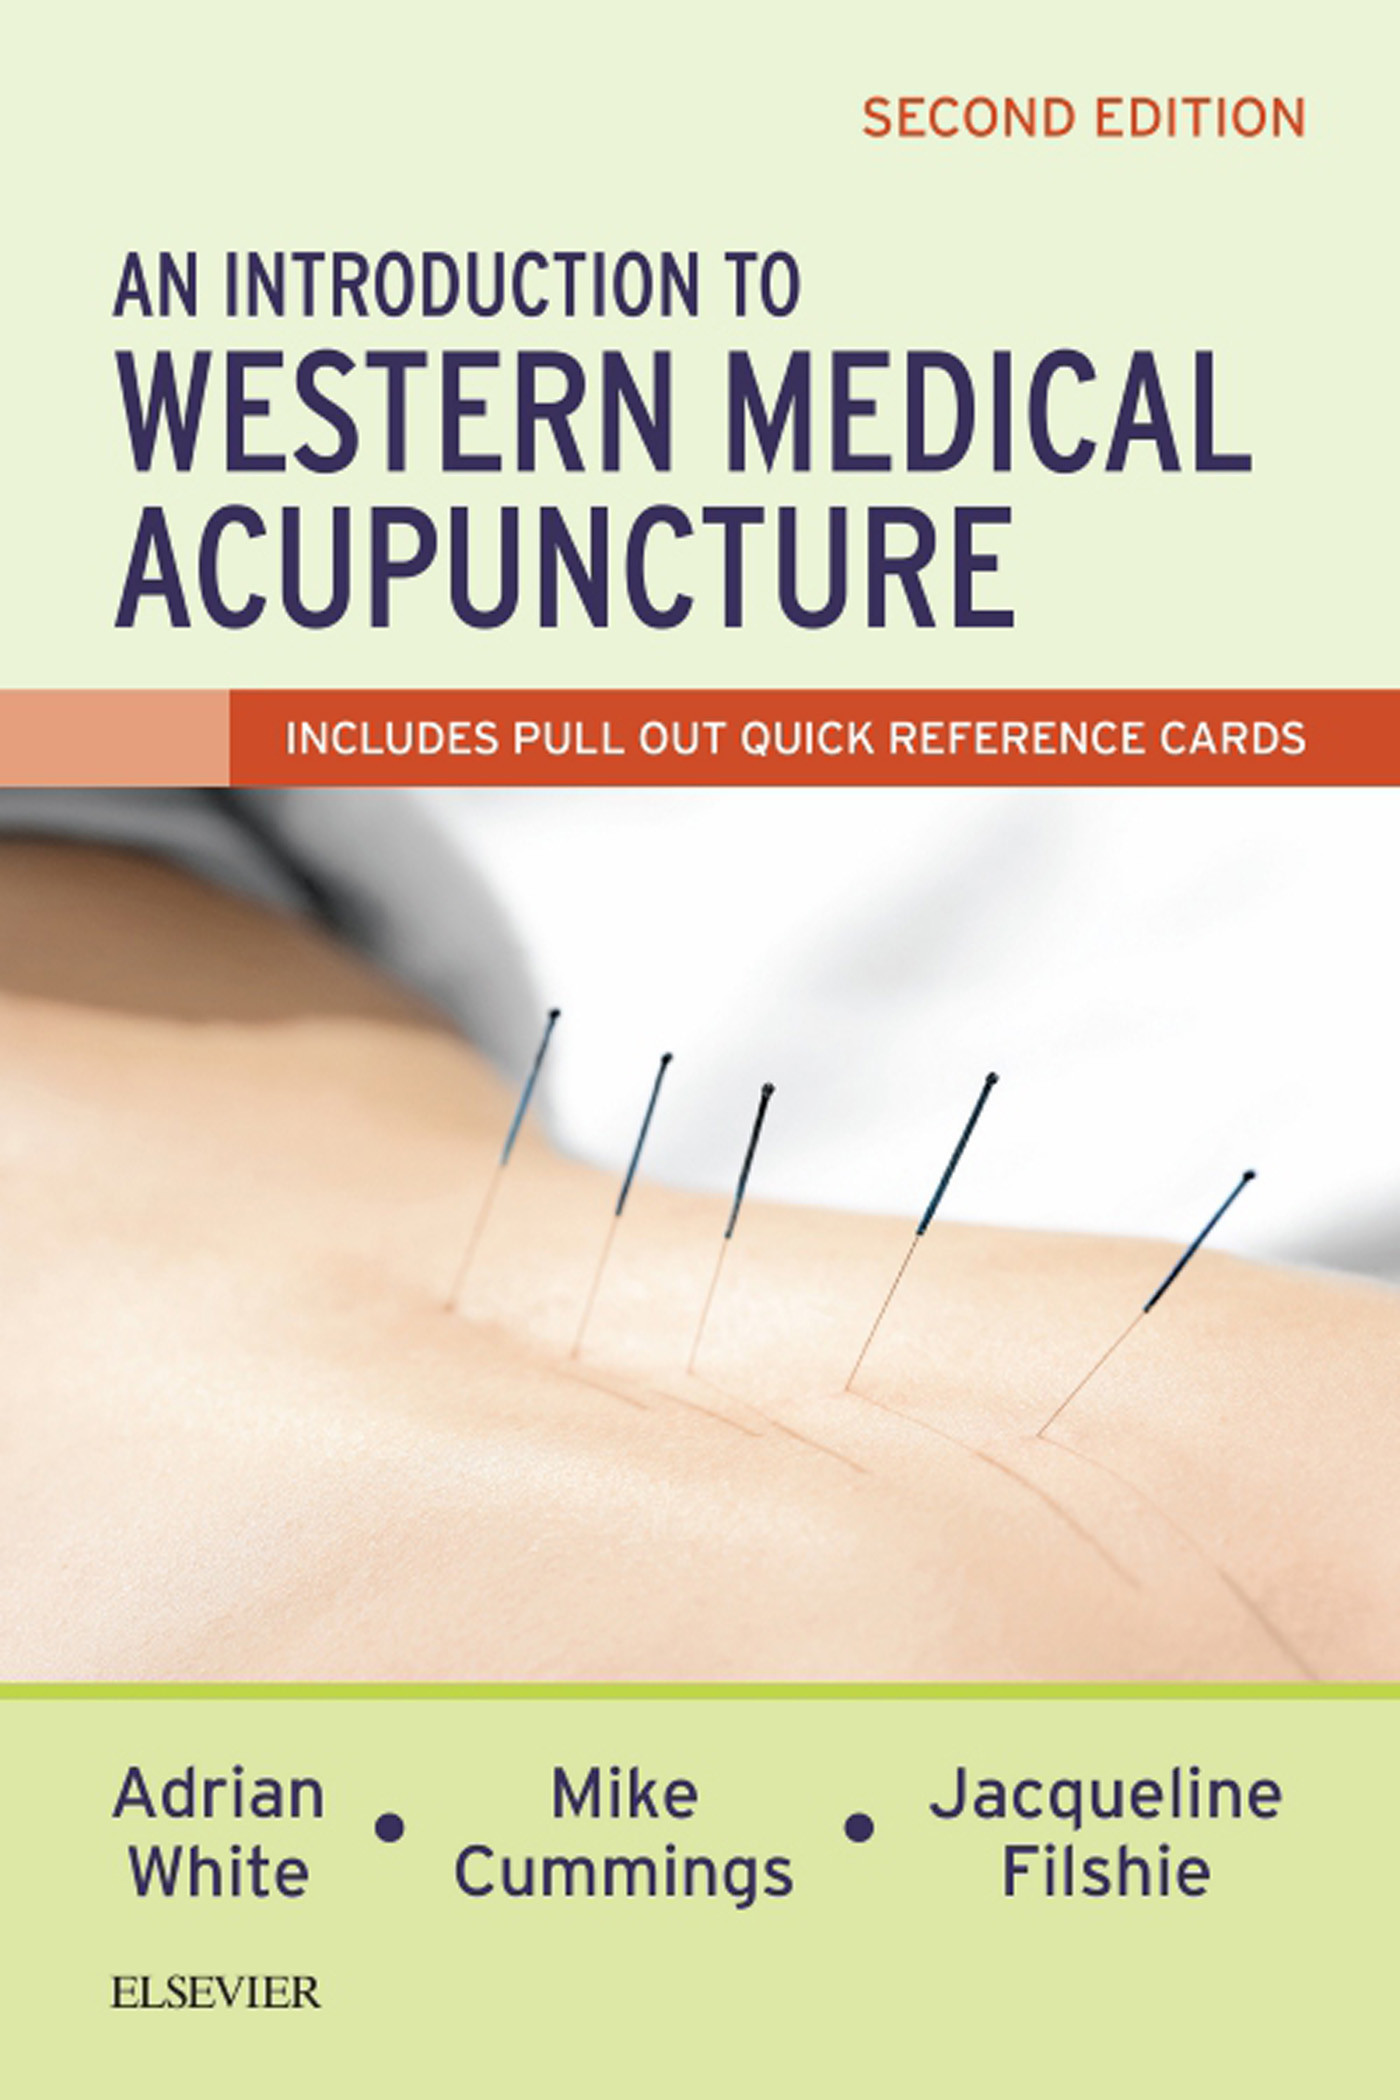 An Introduction to Western Medical Acupuncture - E-Book